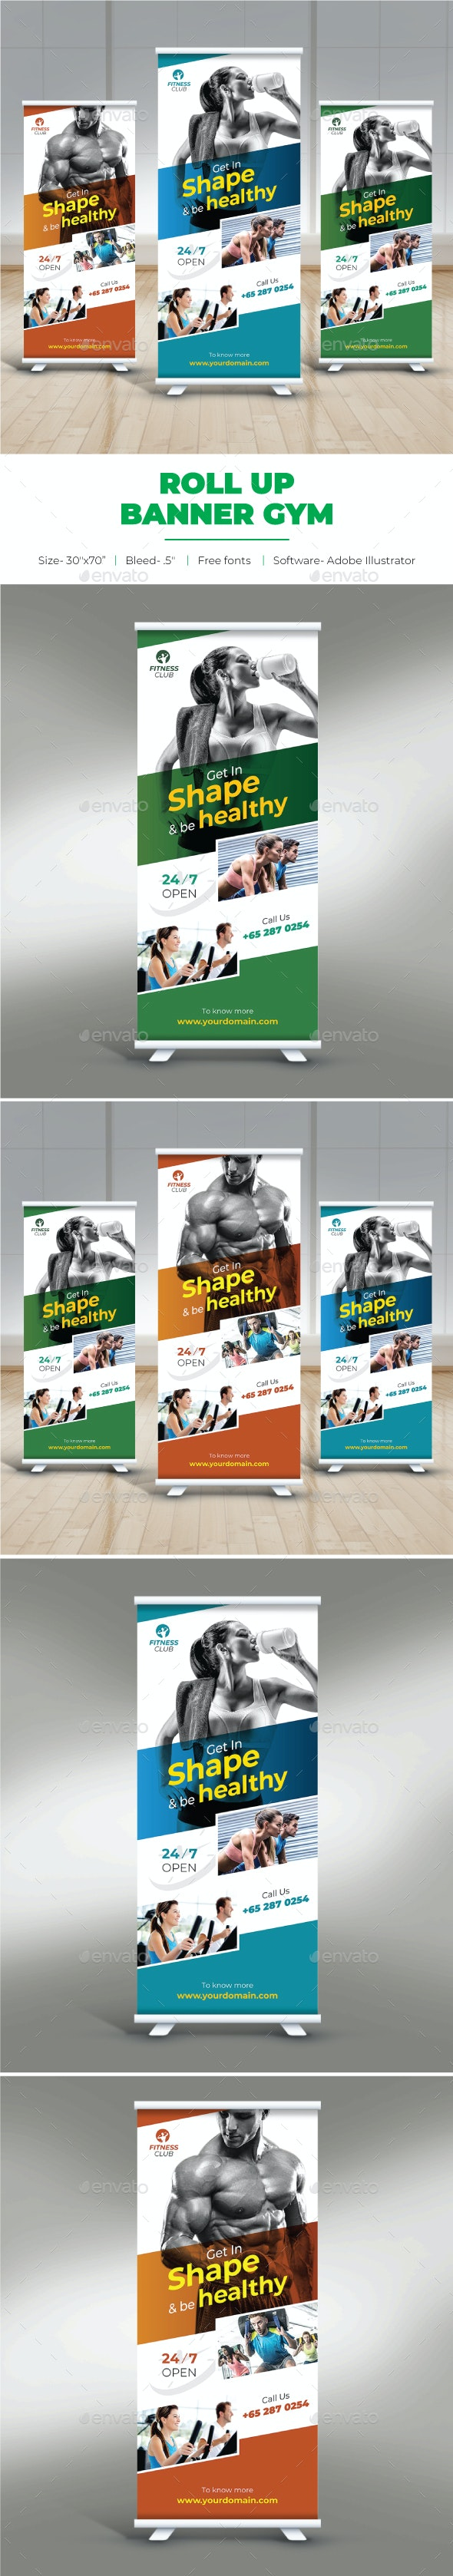 Gym Roll Up Banner - Signage Print Templates